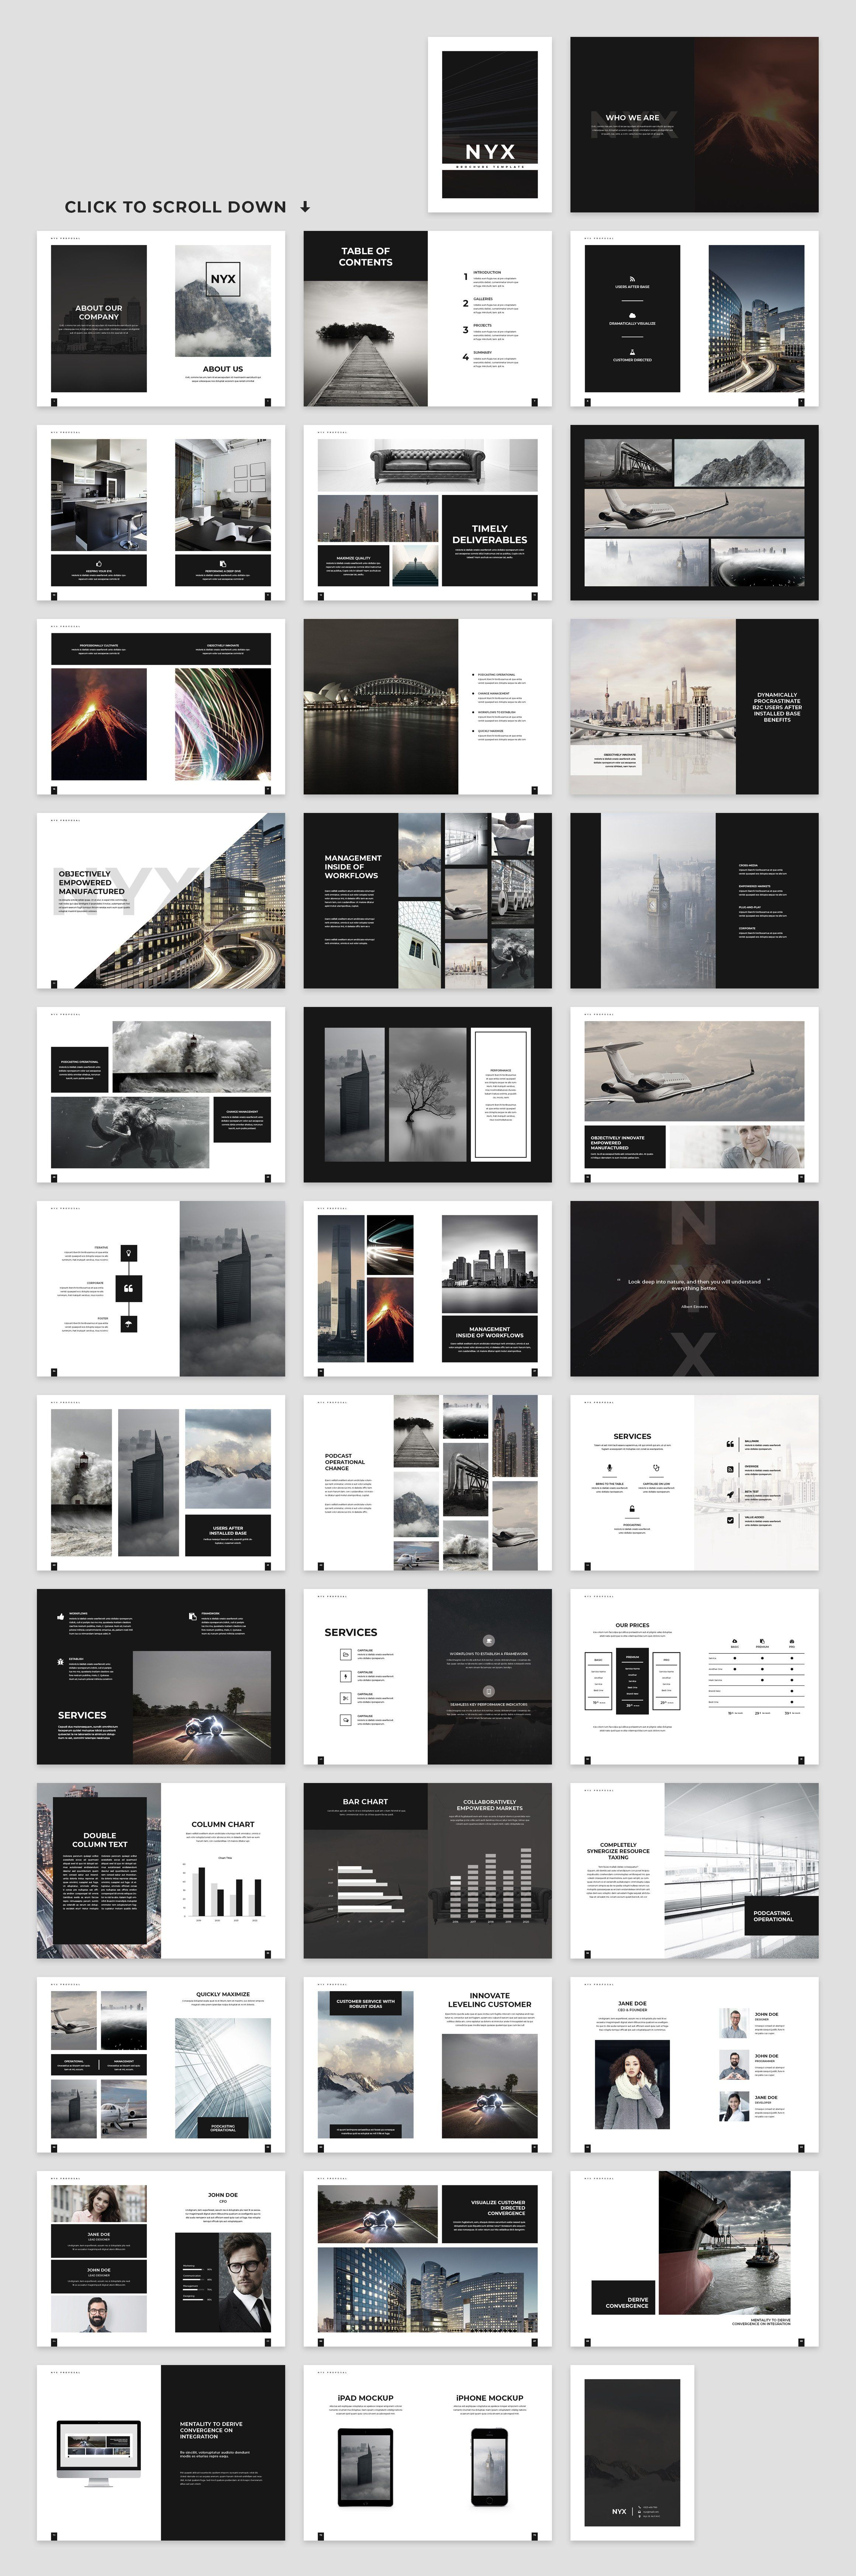 Nyx Proposal Template Proposal templates, Instagram